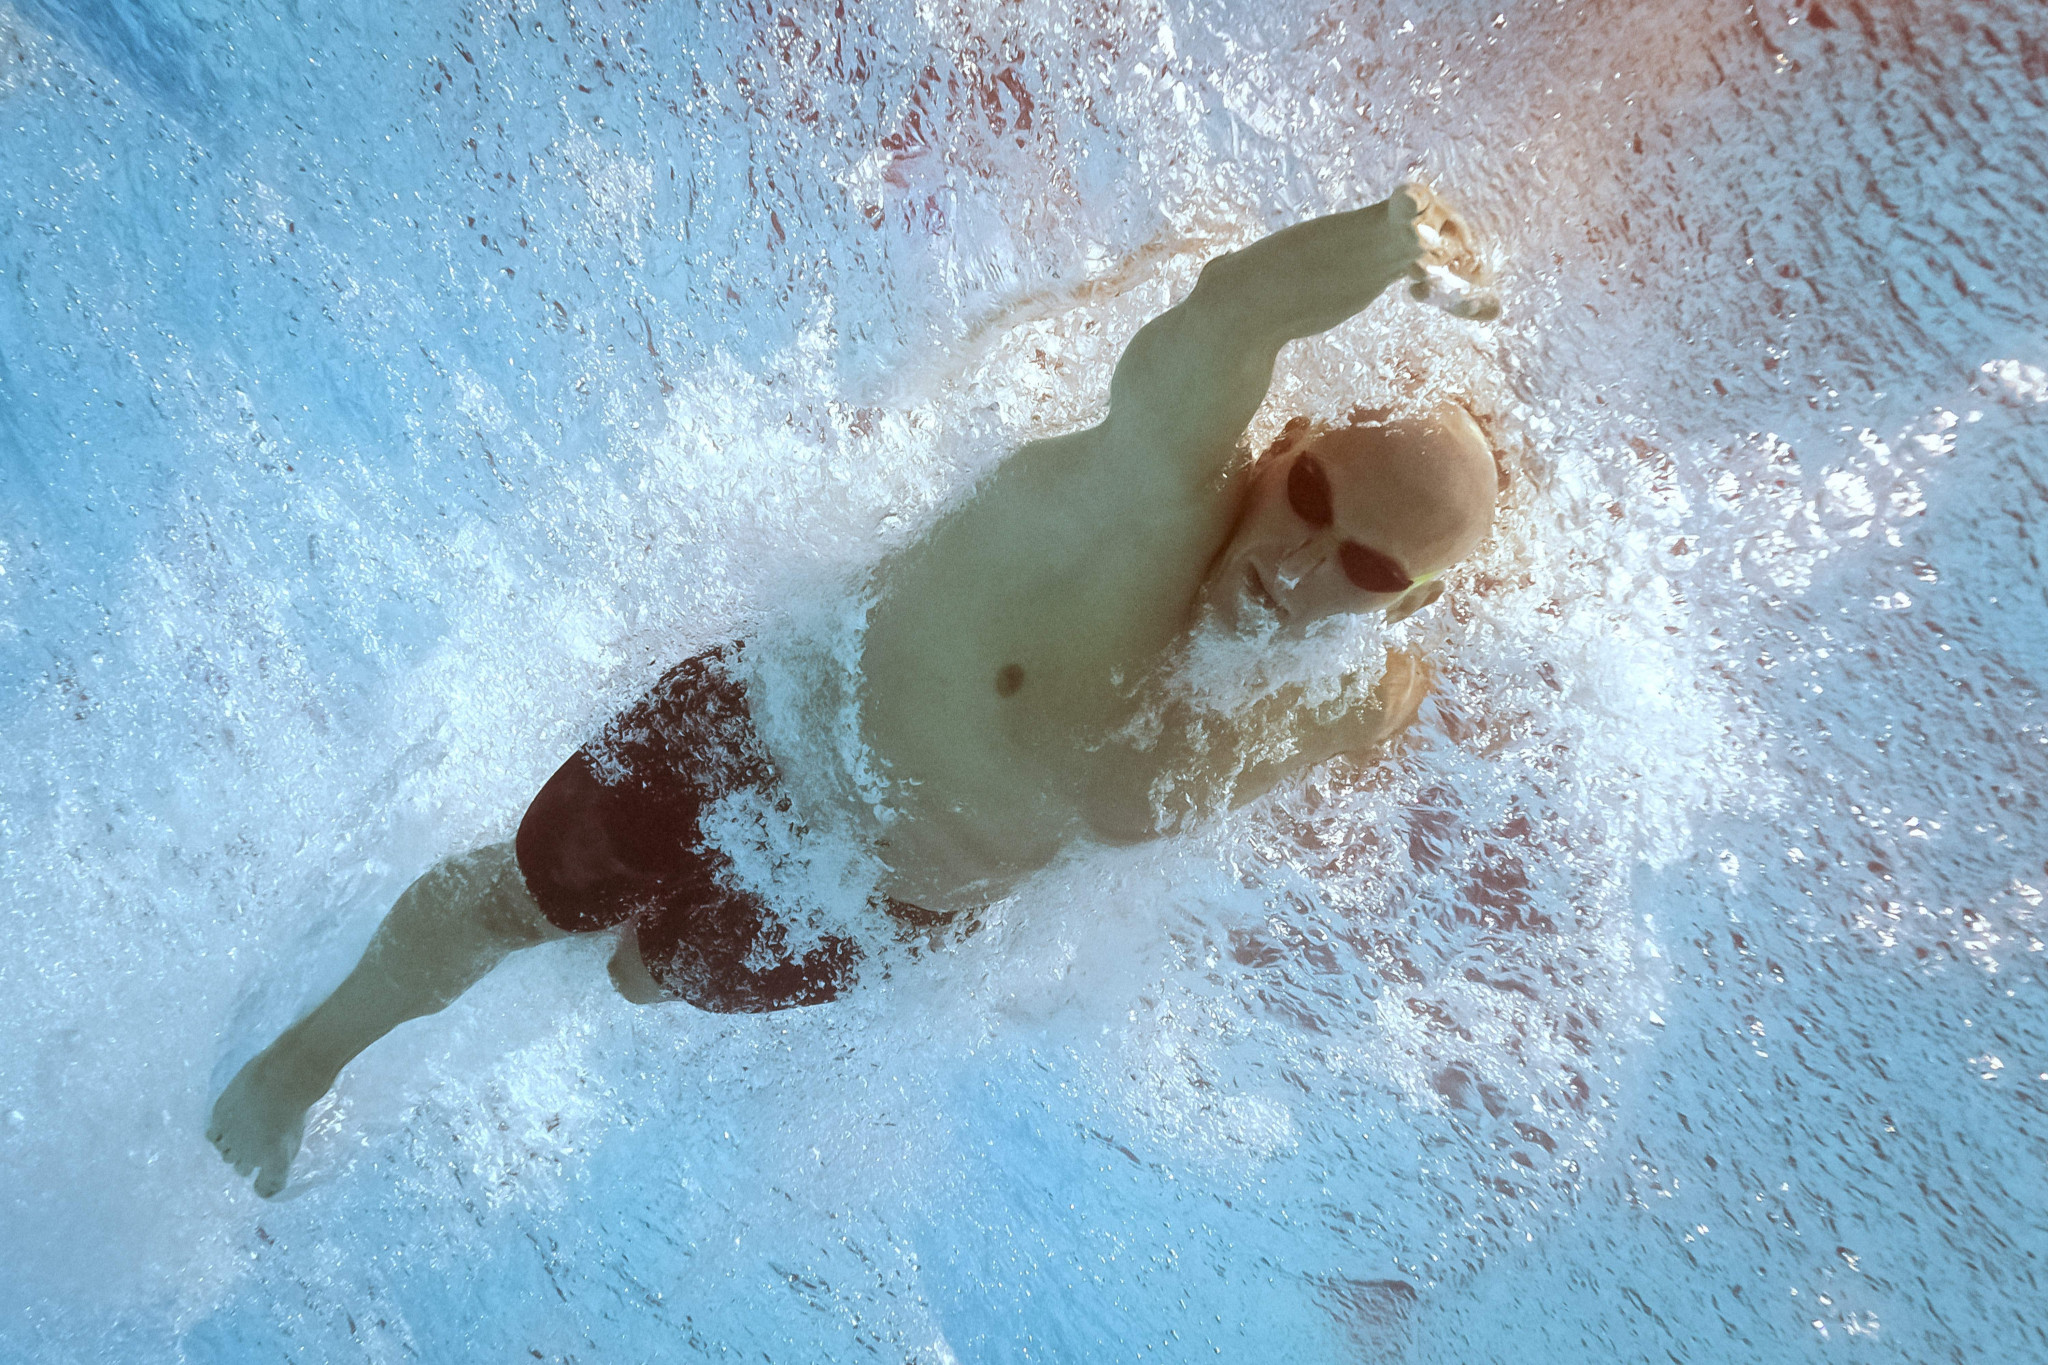 László Cseh won three Summer Universiade gold medals at his sole appearance ©Getty Images